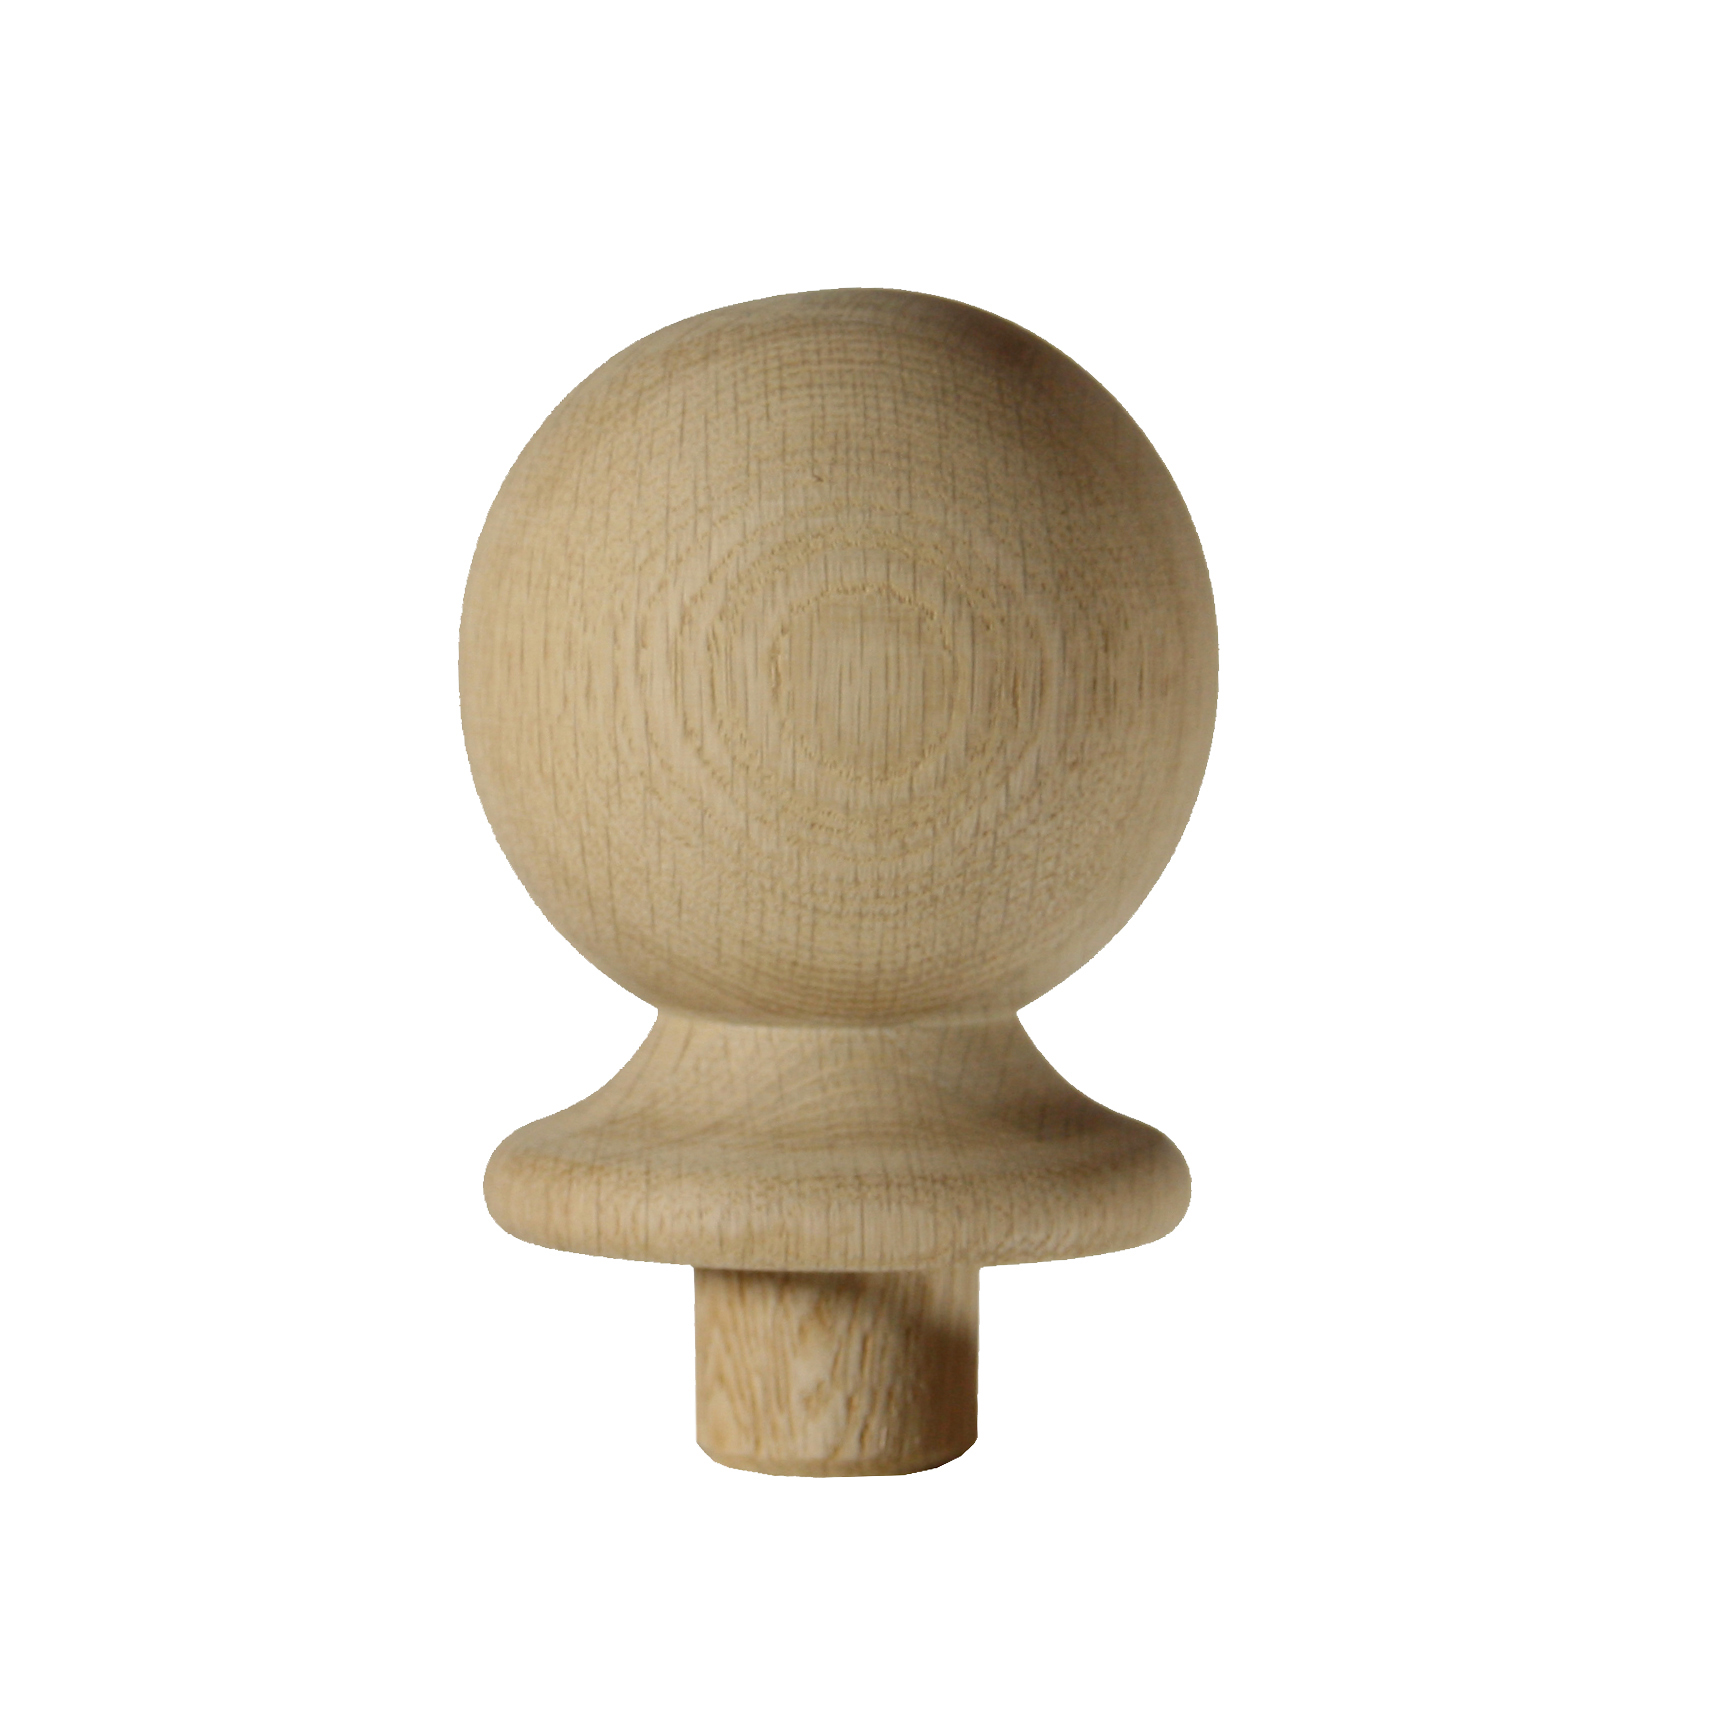 1 Oak Ball Newel Cap 90